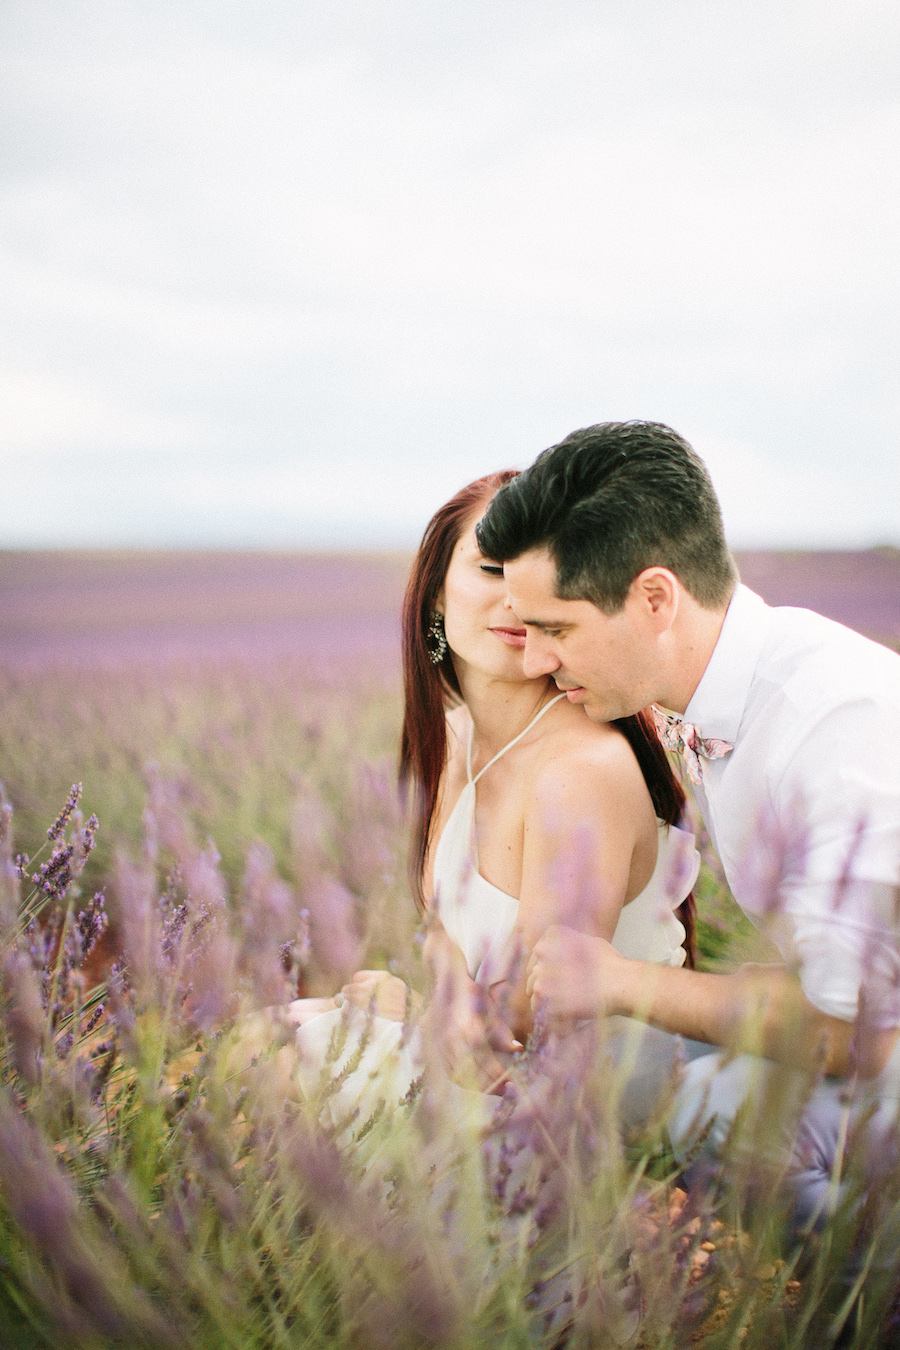 saya-photography-pre-wedding-provence-lavander-field-47.jpg